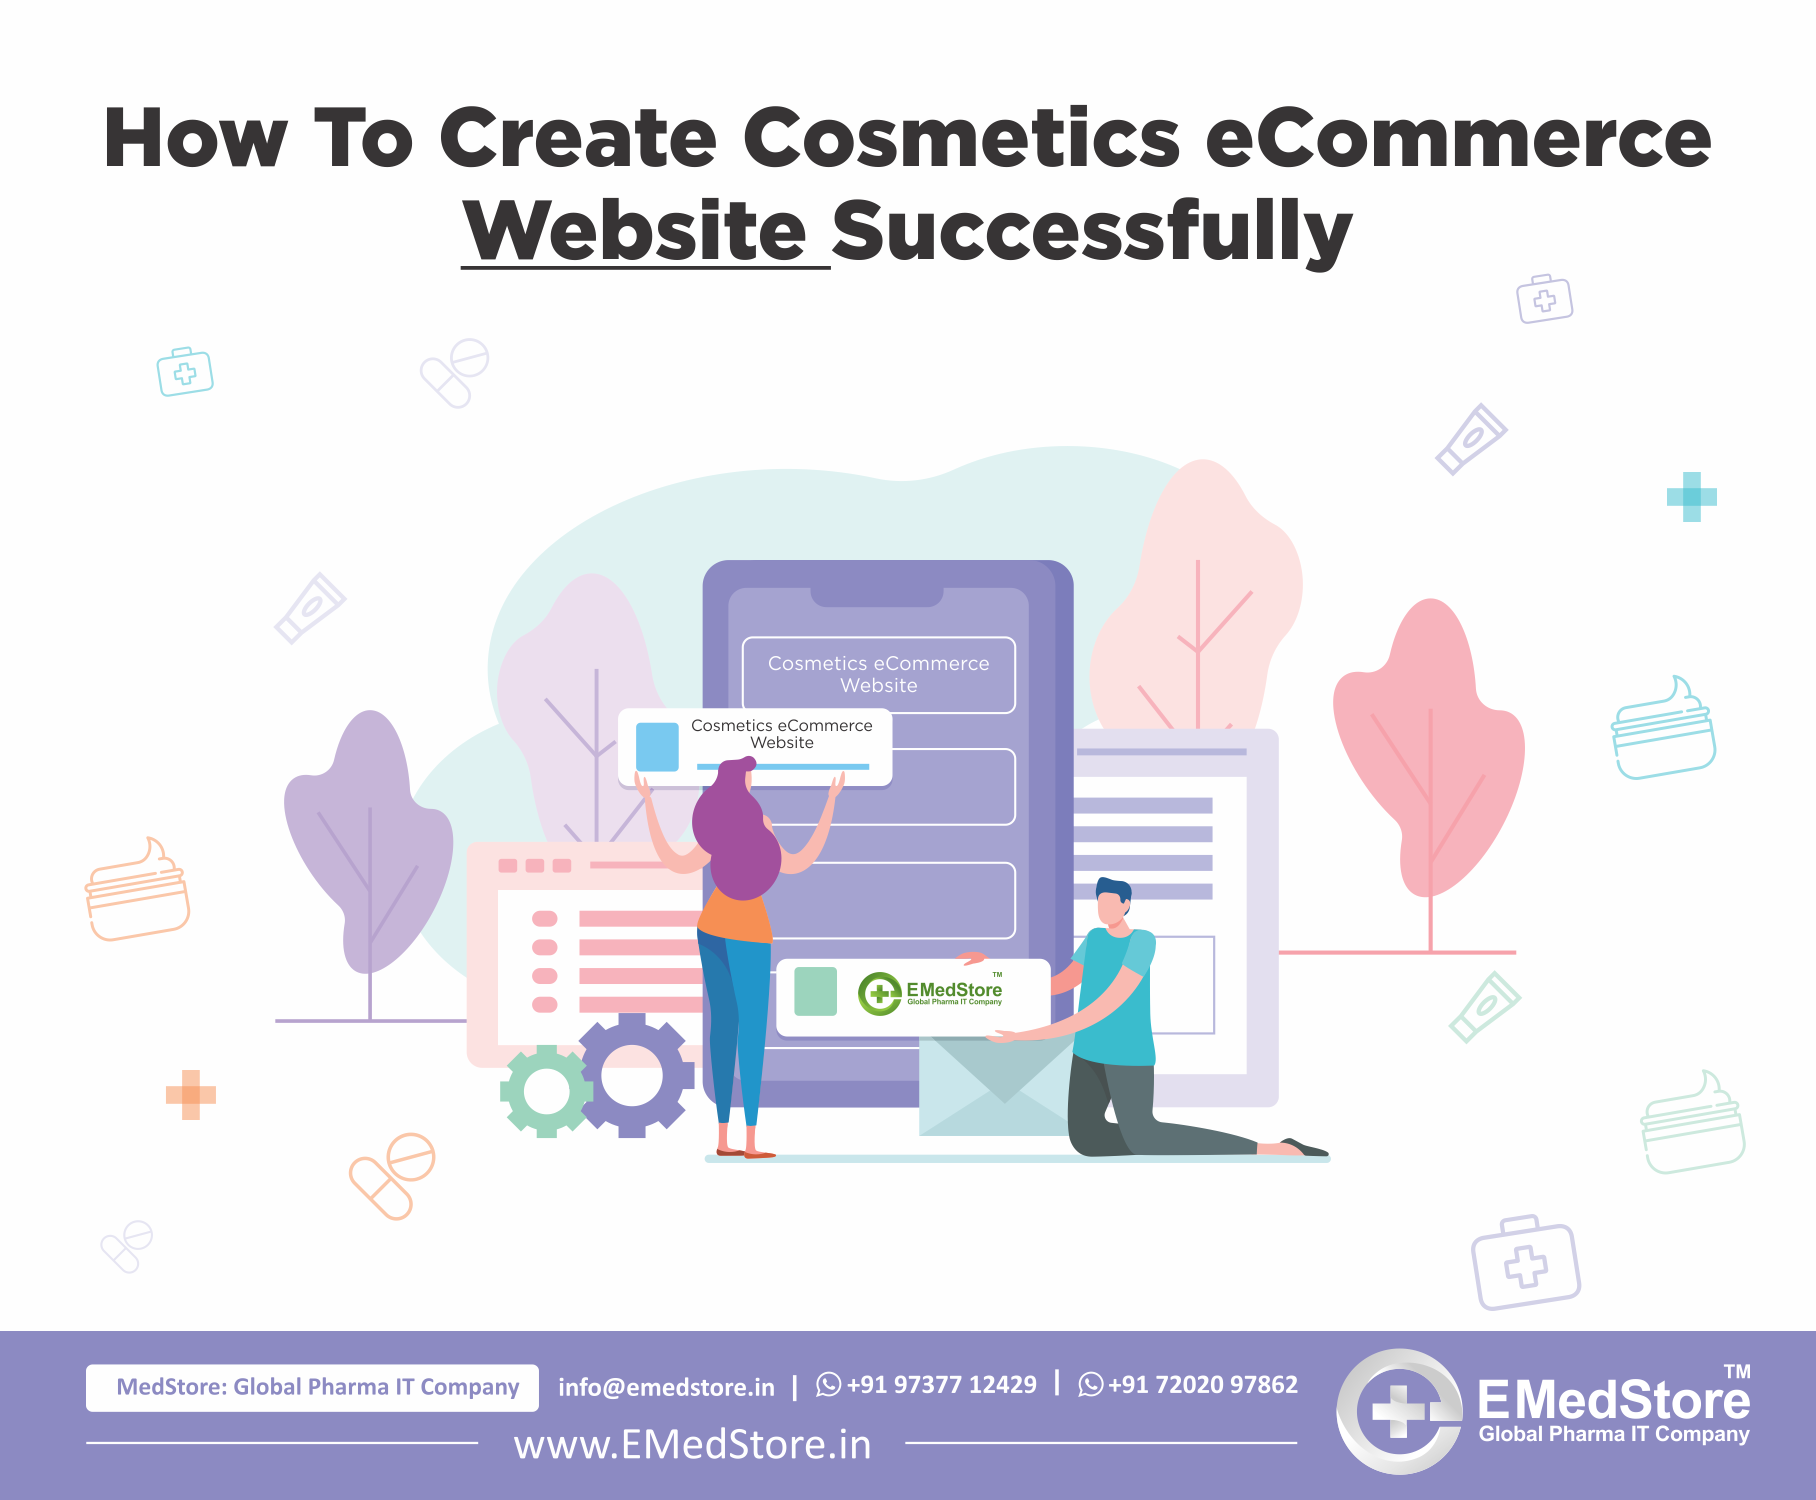 How To Create Cosmetics eCommerce Website Successfully